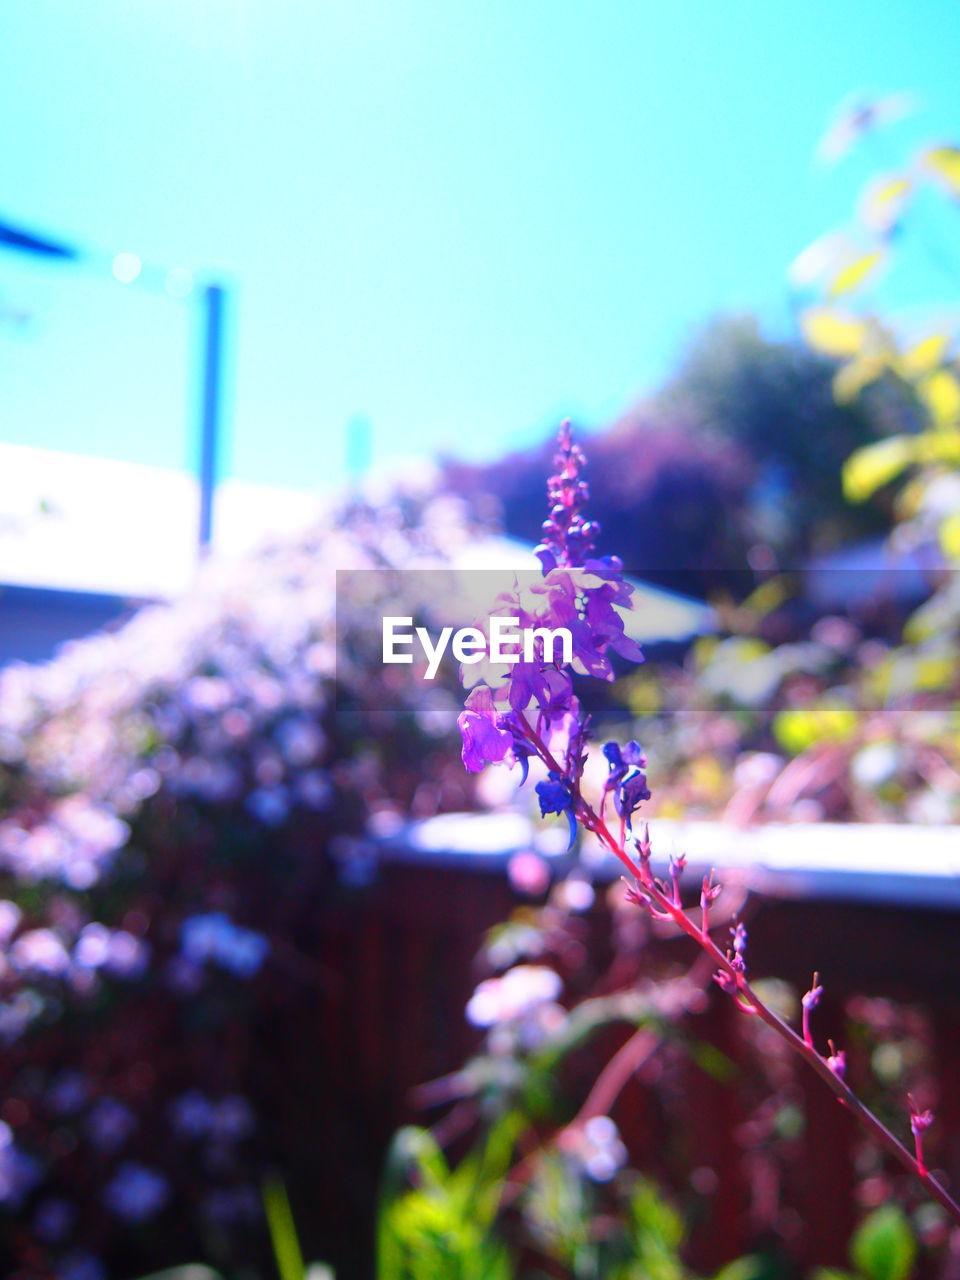 nature, growth, plant, focus on foreground, fragility, beauty in nature, no people, day, flower, freshness, outdoors, close-up, tree